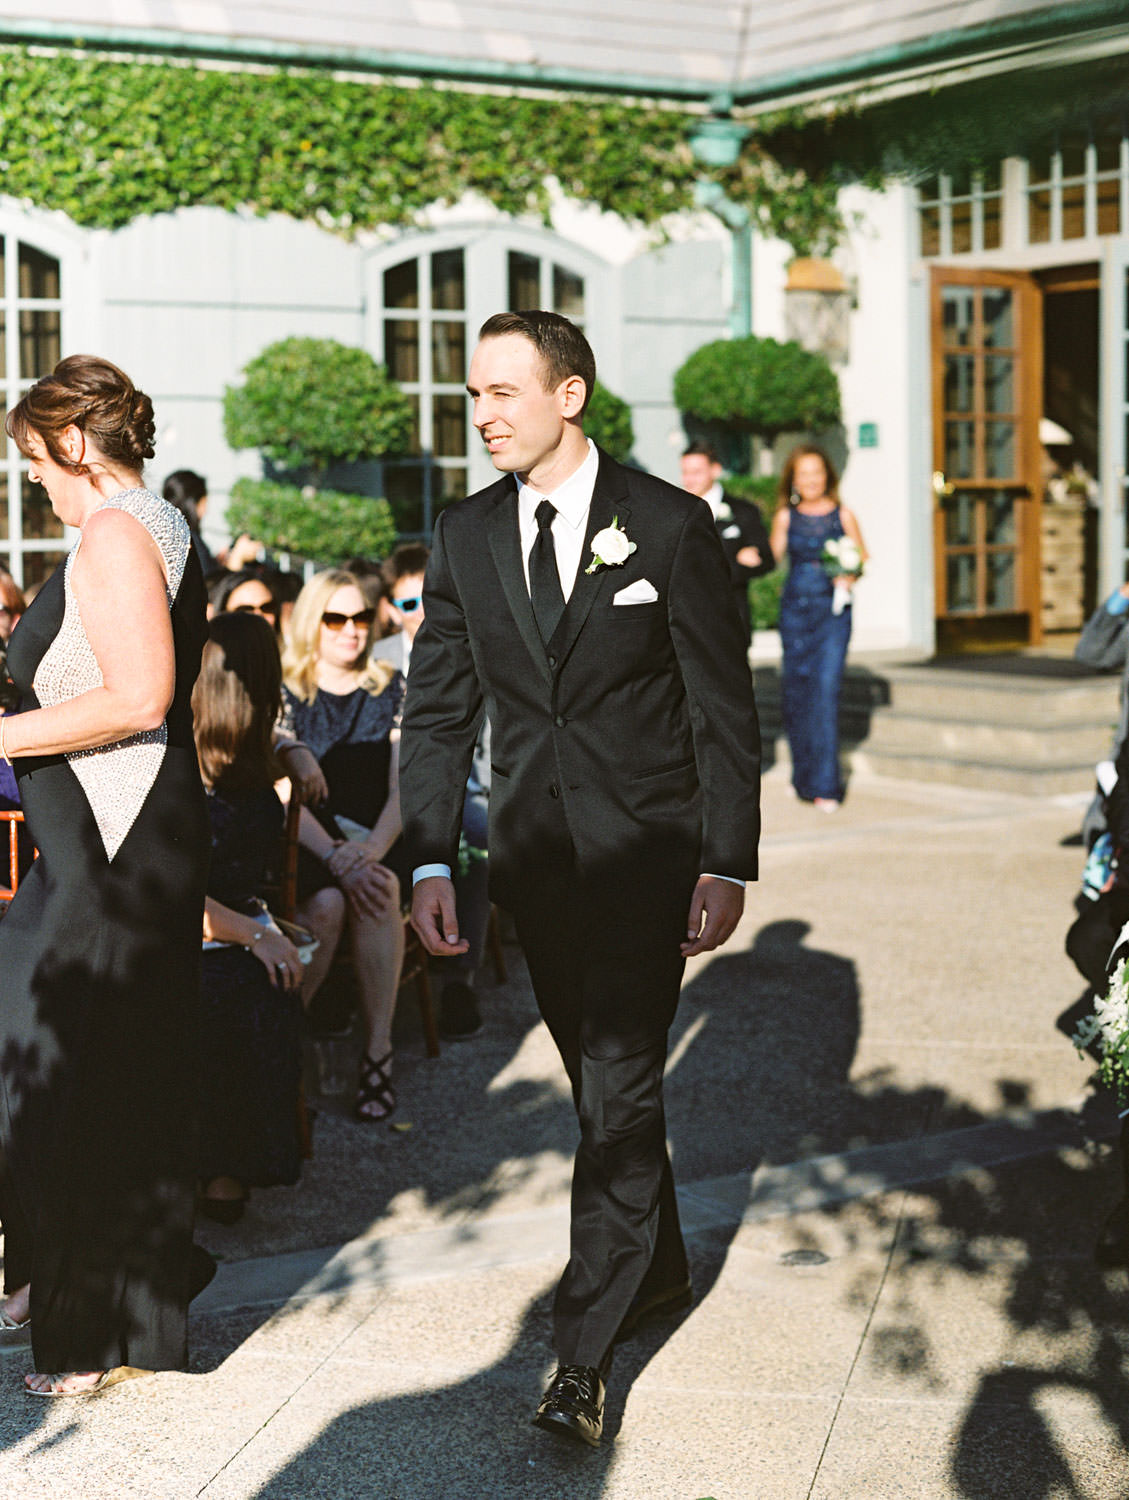 Film photo of groom walking down the aisle for his ceremony on an outdoor patio, Del Mar Country Club Wedding by Cavin Elizabeth Photography